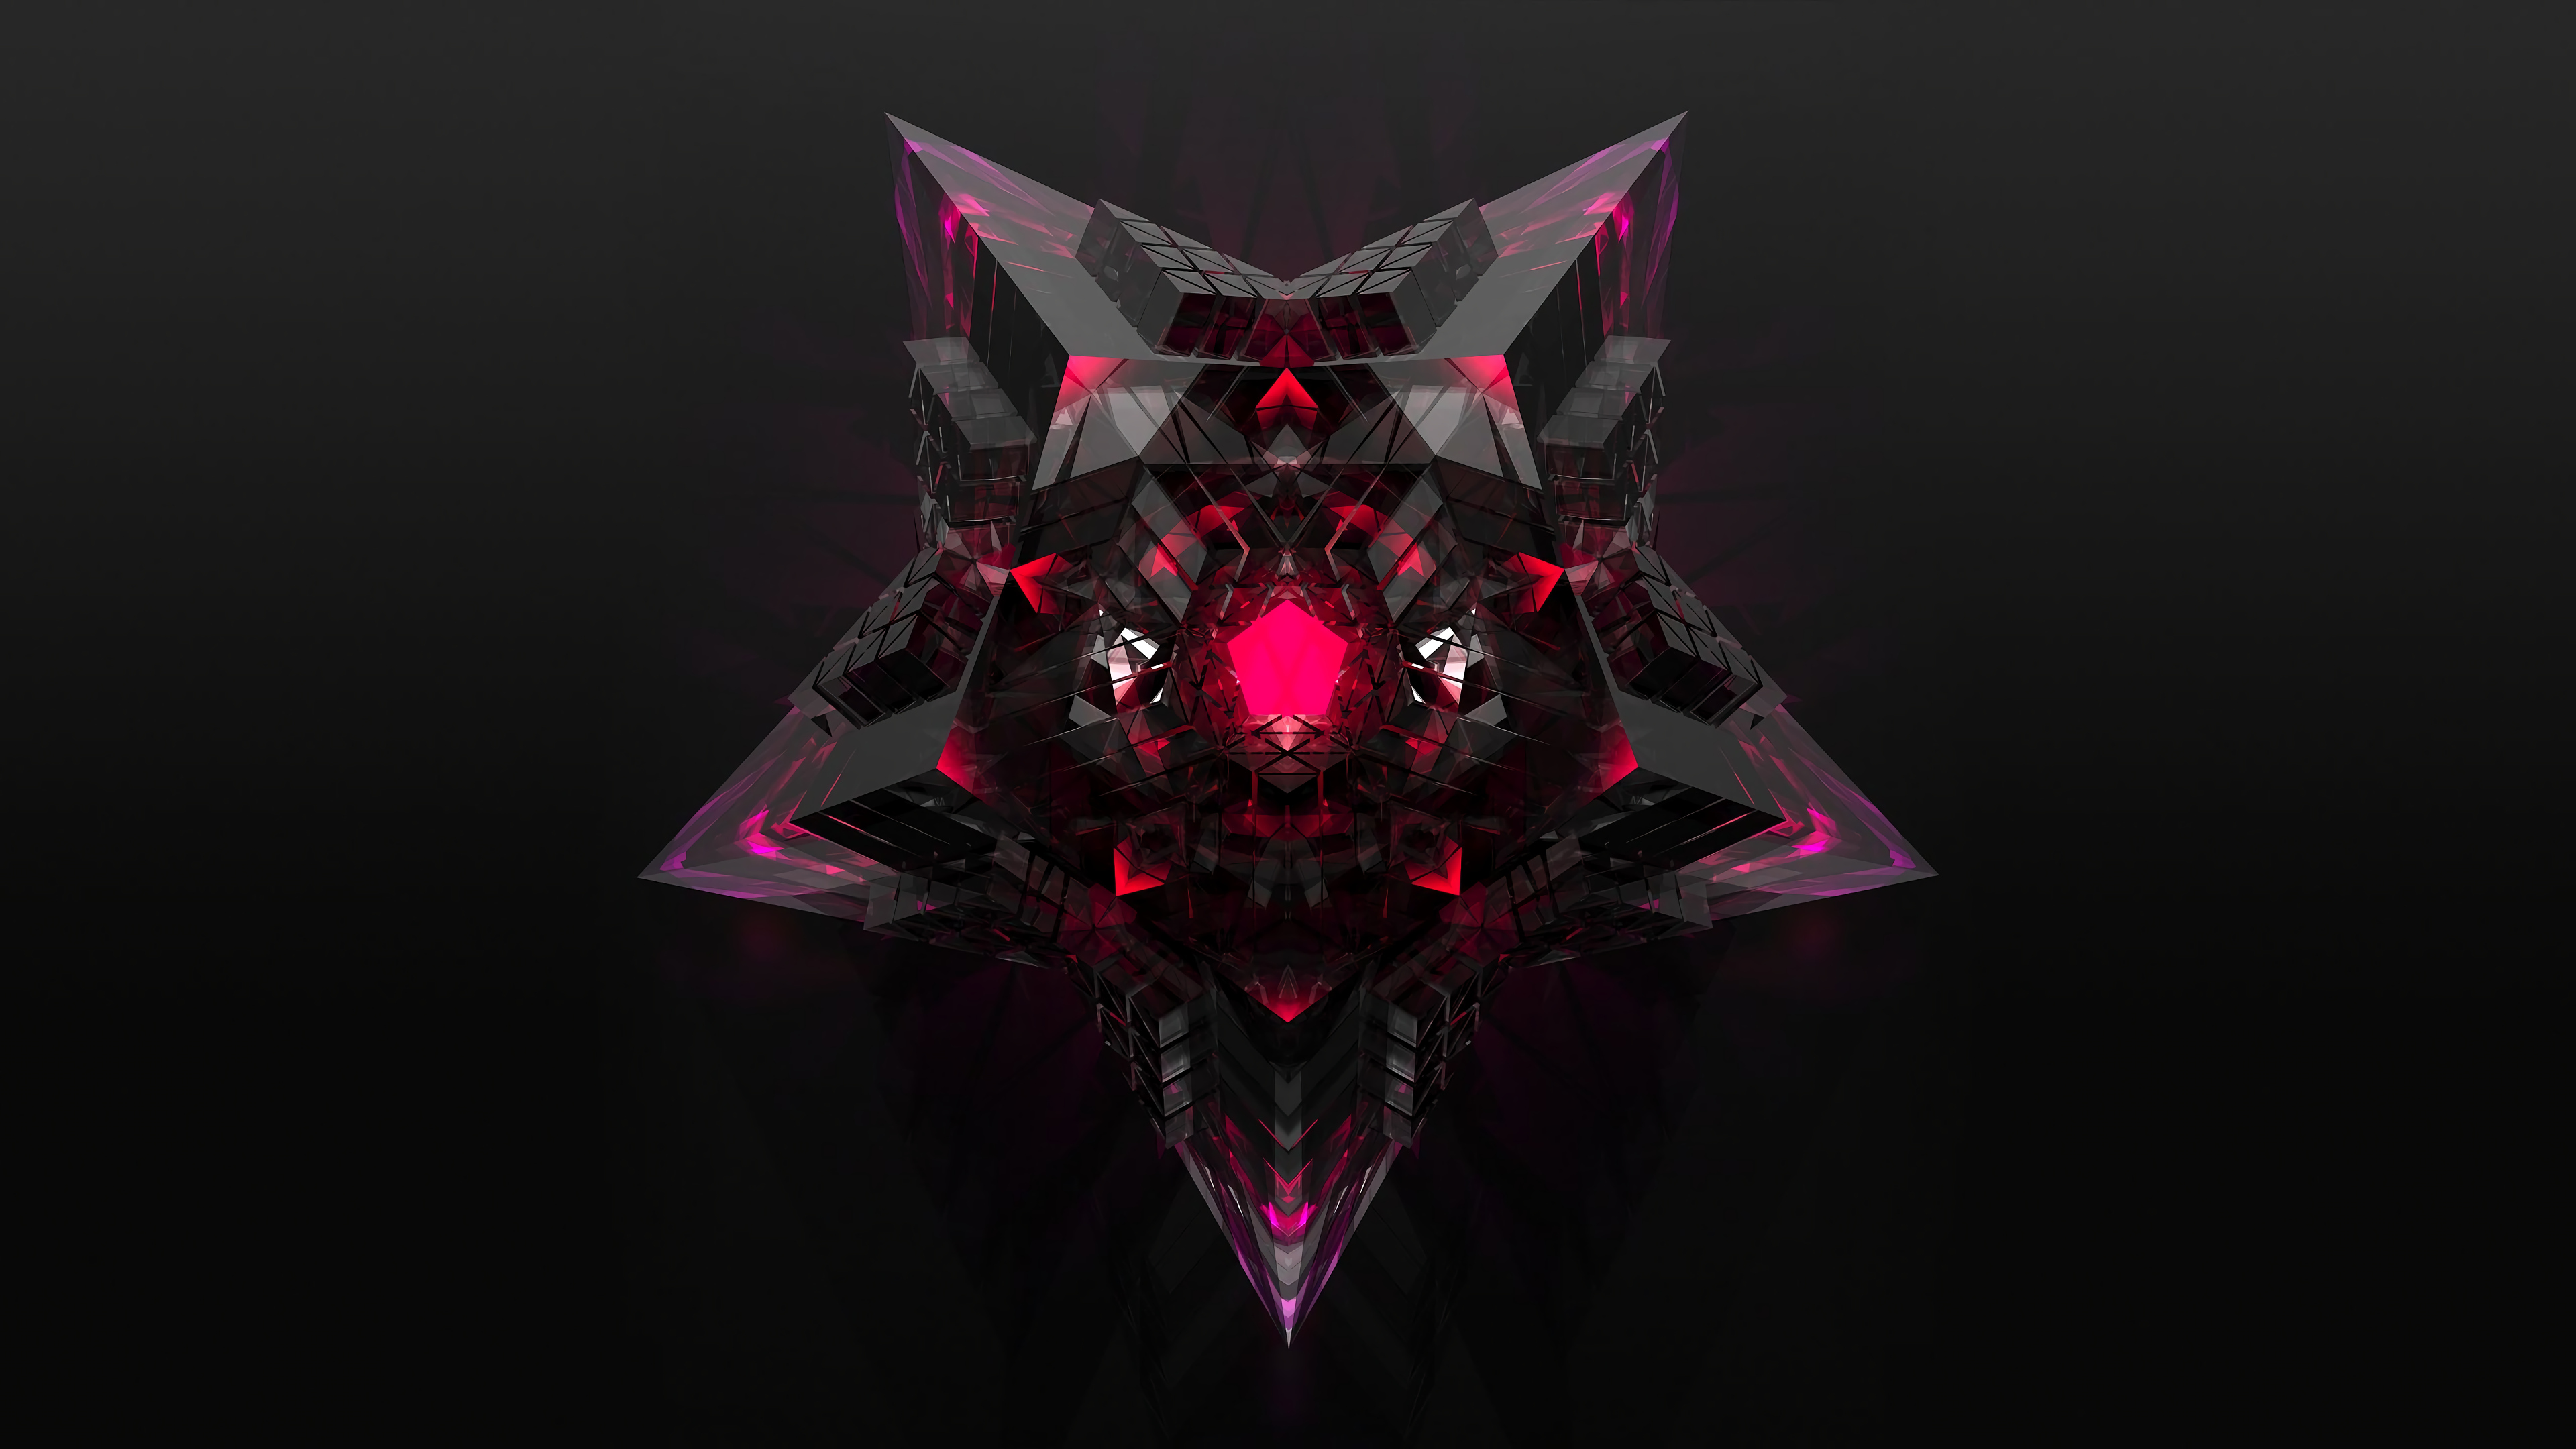 Black And Pink Star 4k Ultra Hd Wallpaper Background Image